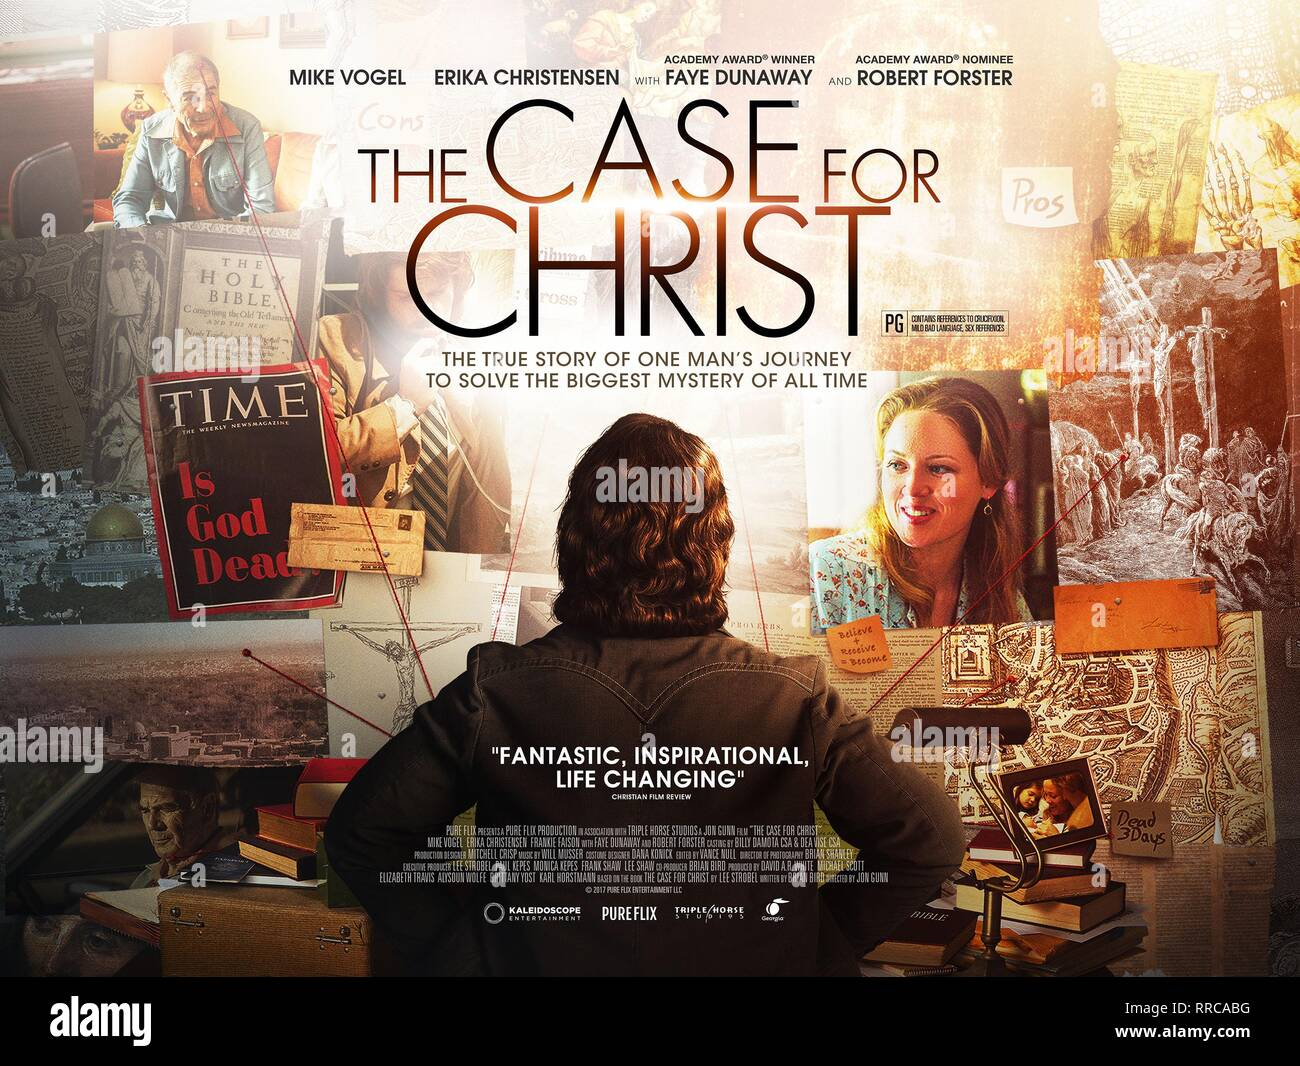 THE CASE FOR CHRIST, MOVIE POSTER, 2017 - Stock Image